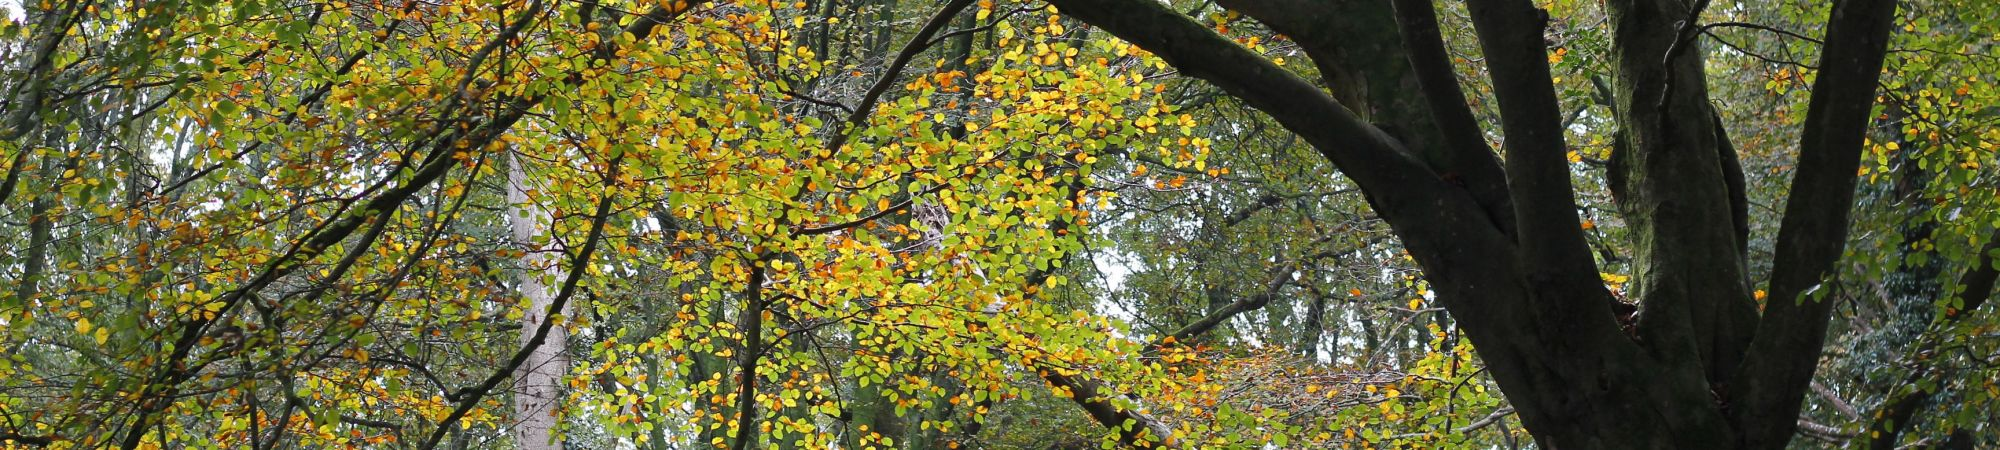 Crenver Woods - Autumn in Cornwall